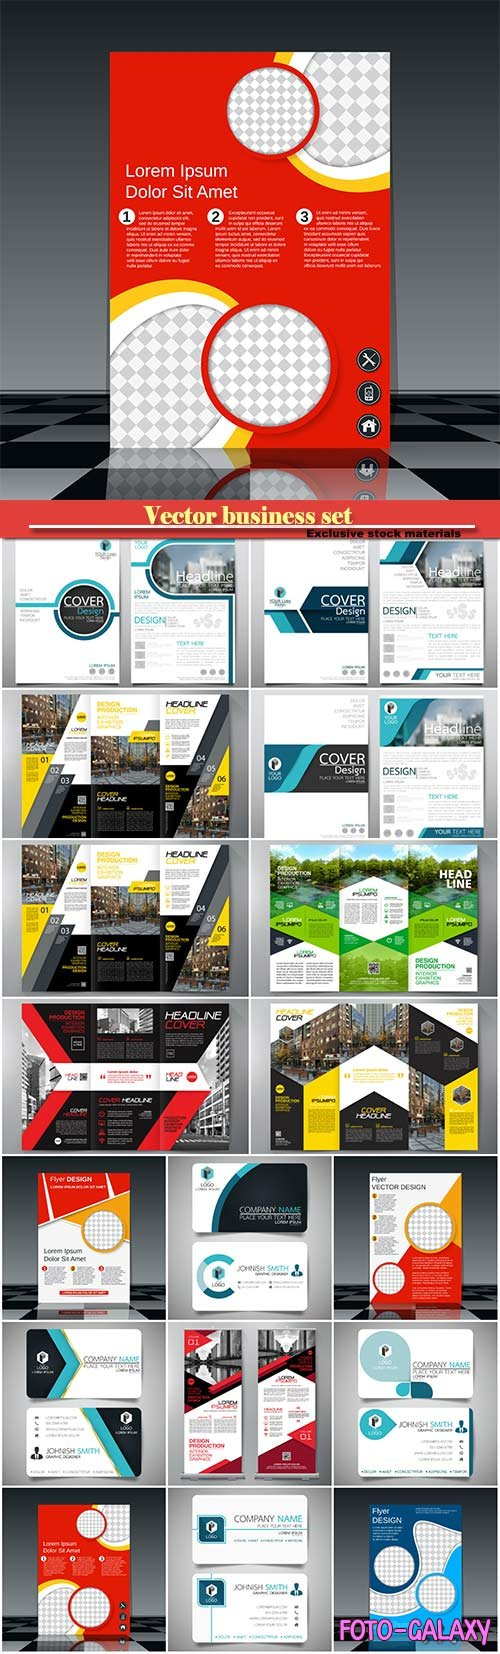 Vector business set, roll up, brochure and business card